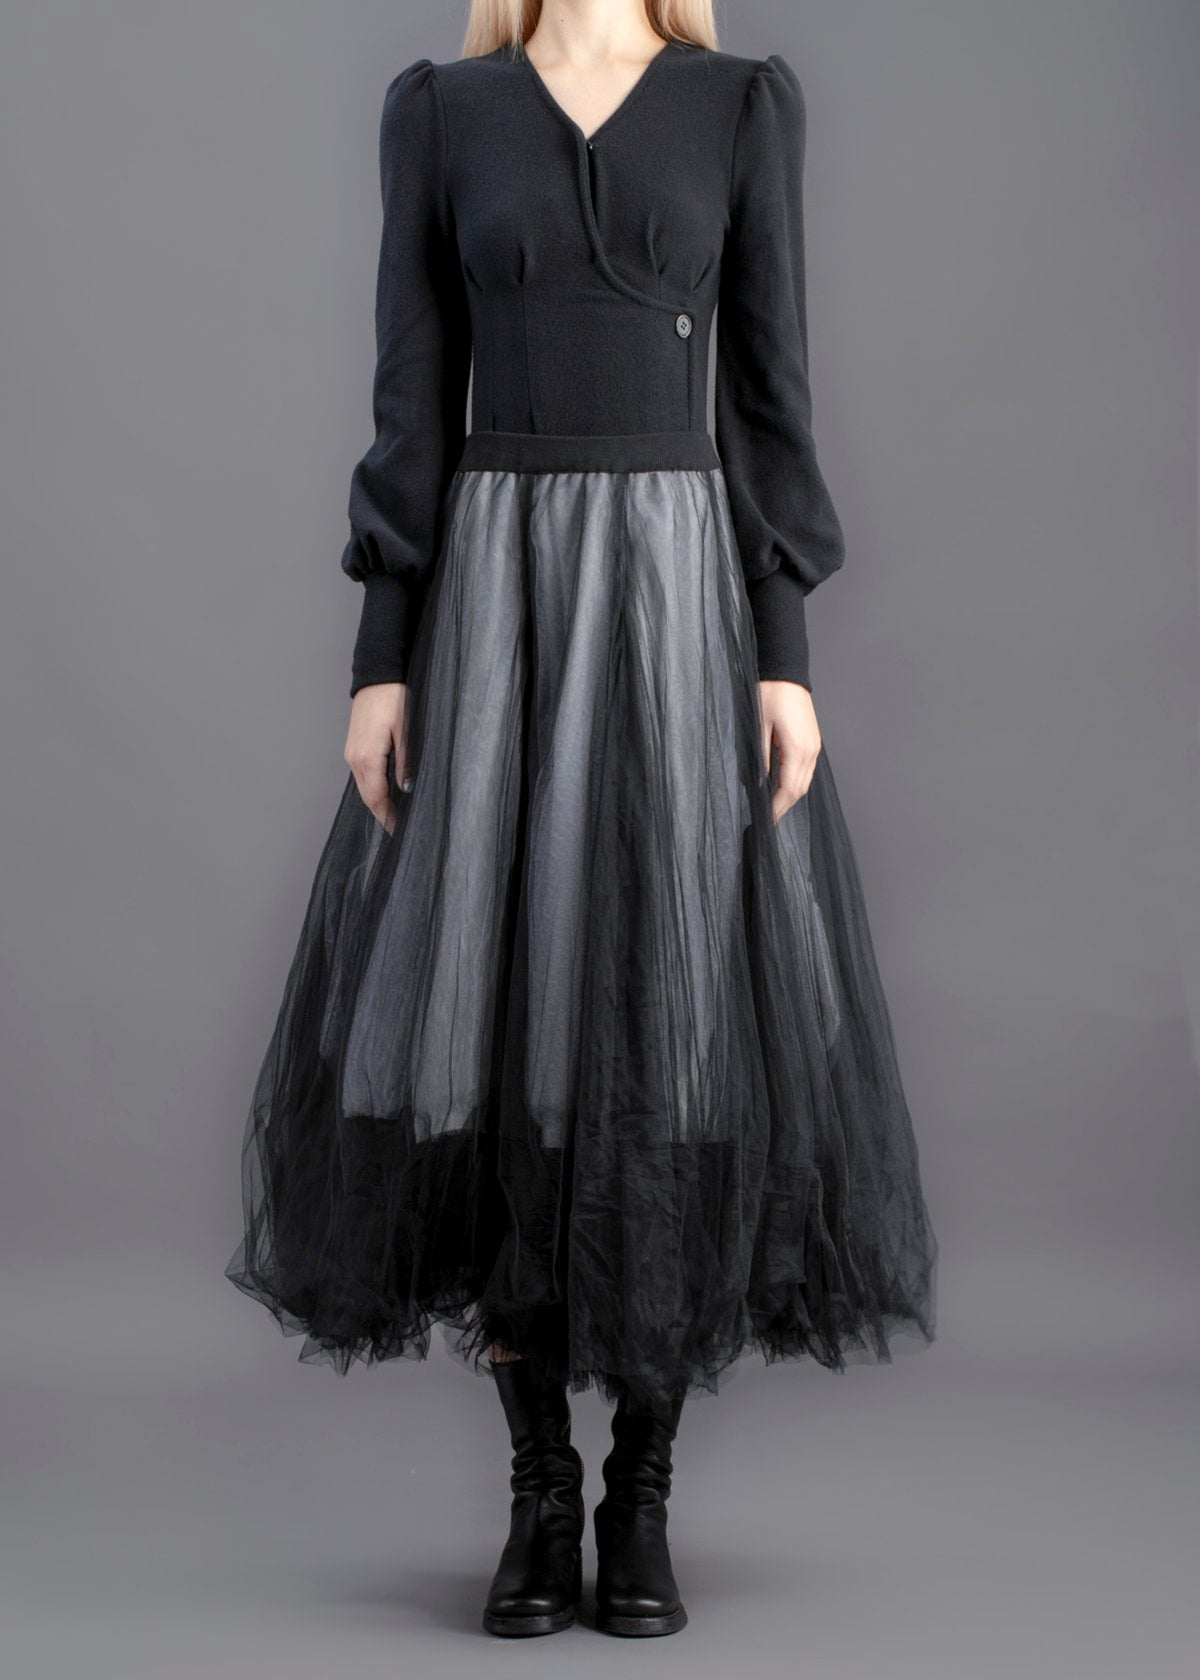 Image of Quadruple Layered Tulle Skirt  Black & White